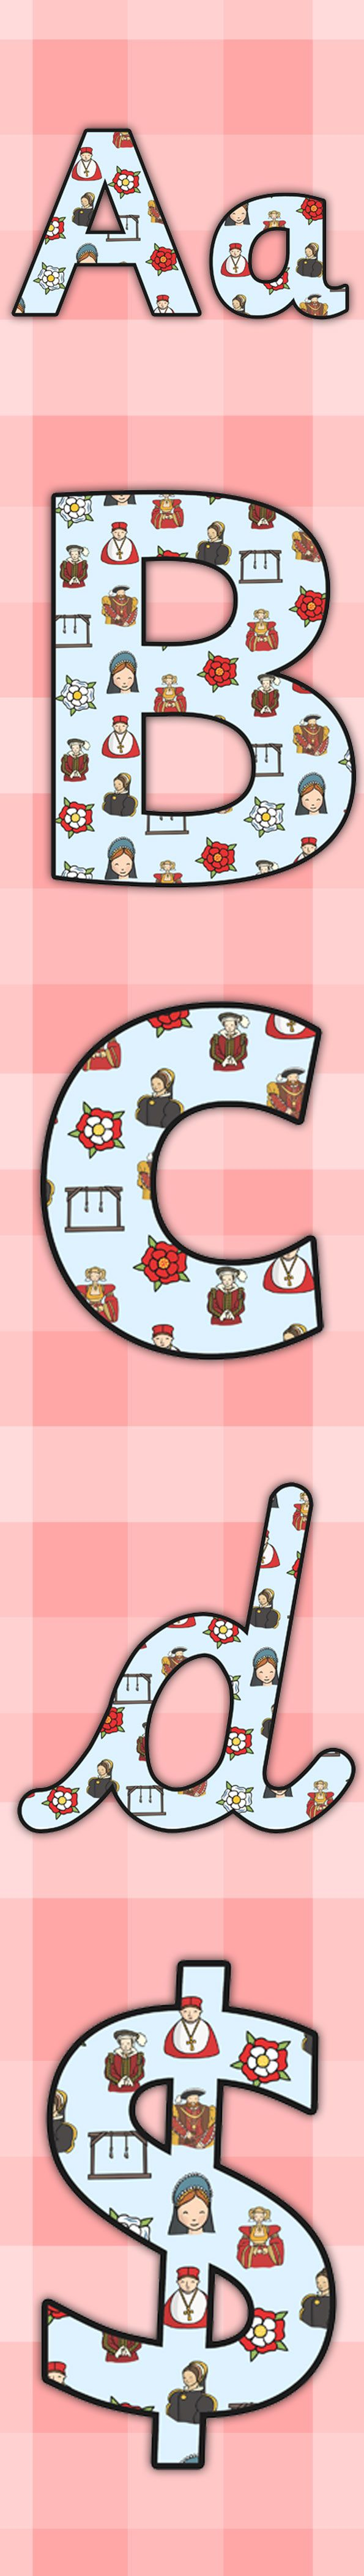 Twinkl Resources >> The Tudors Display Lettering >> Printable resources for Primary, EYFS, KS1 and SEN.  Thousands of classroom displays and teaching aids! Topics, The Tudors, History, Display, Classroom, Lettering